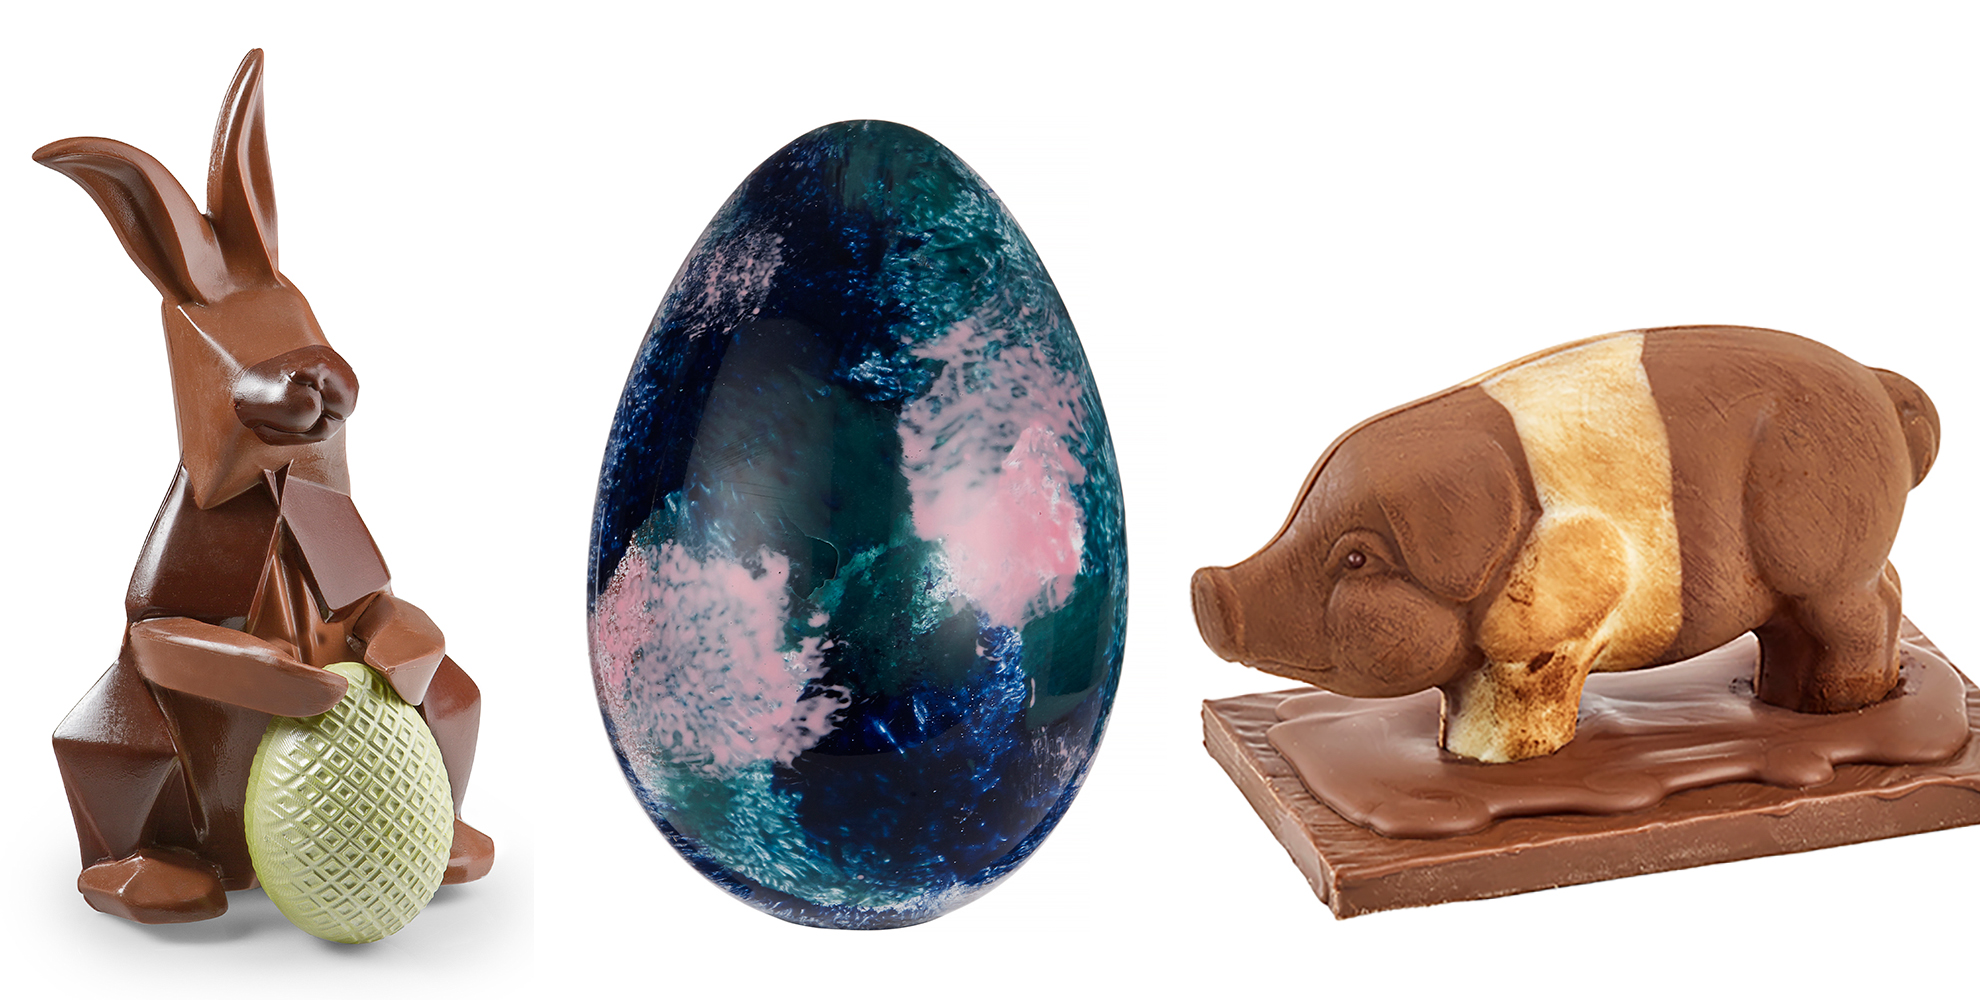 A selection of Easter eggs